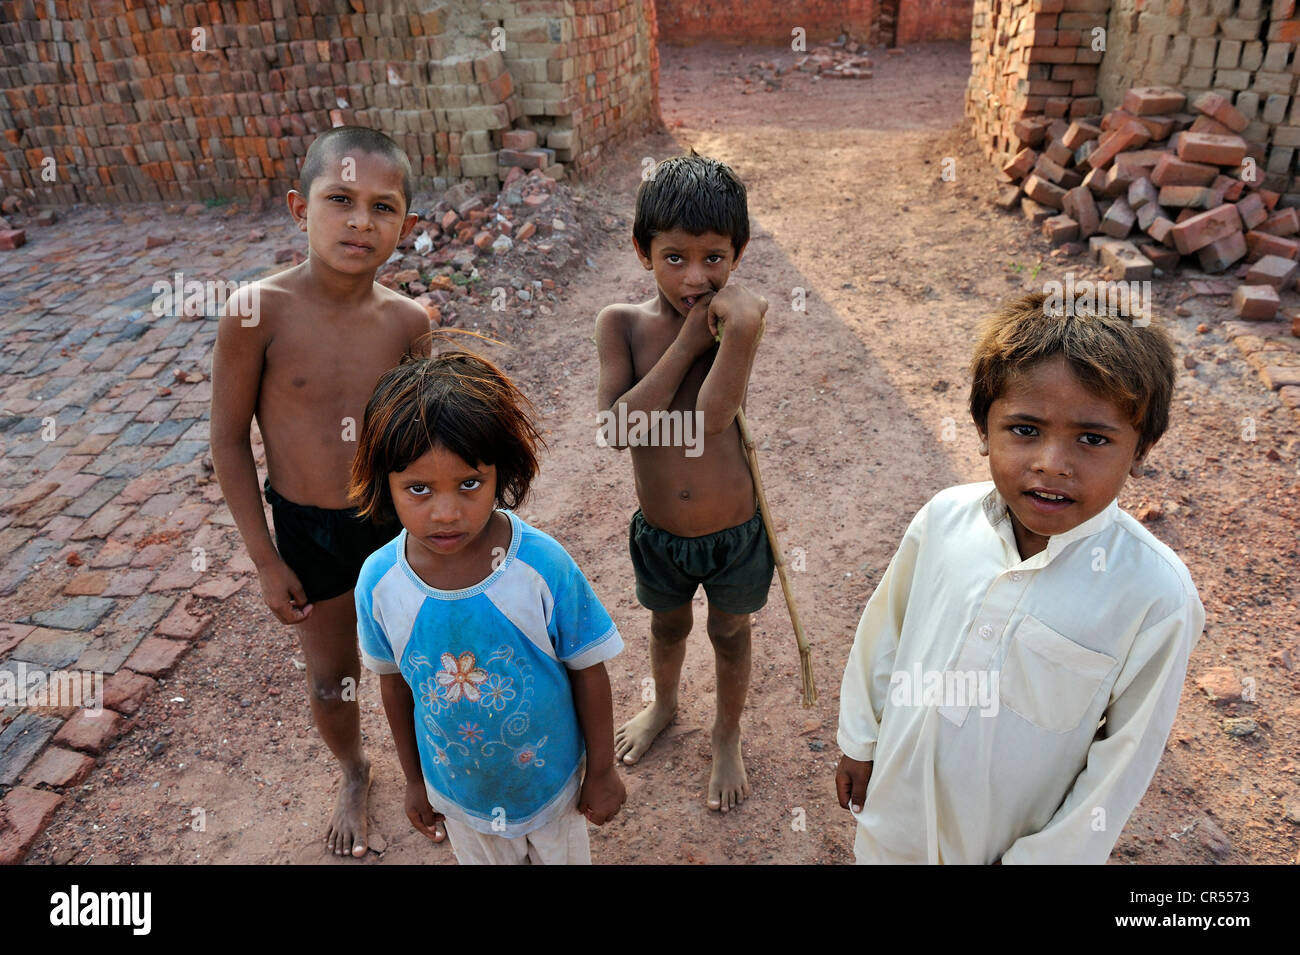 Children Who Live With Their Families Under The Slavery